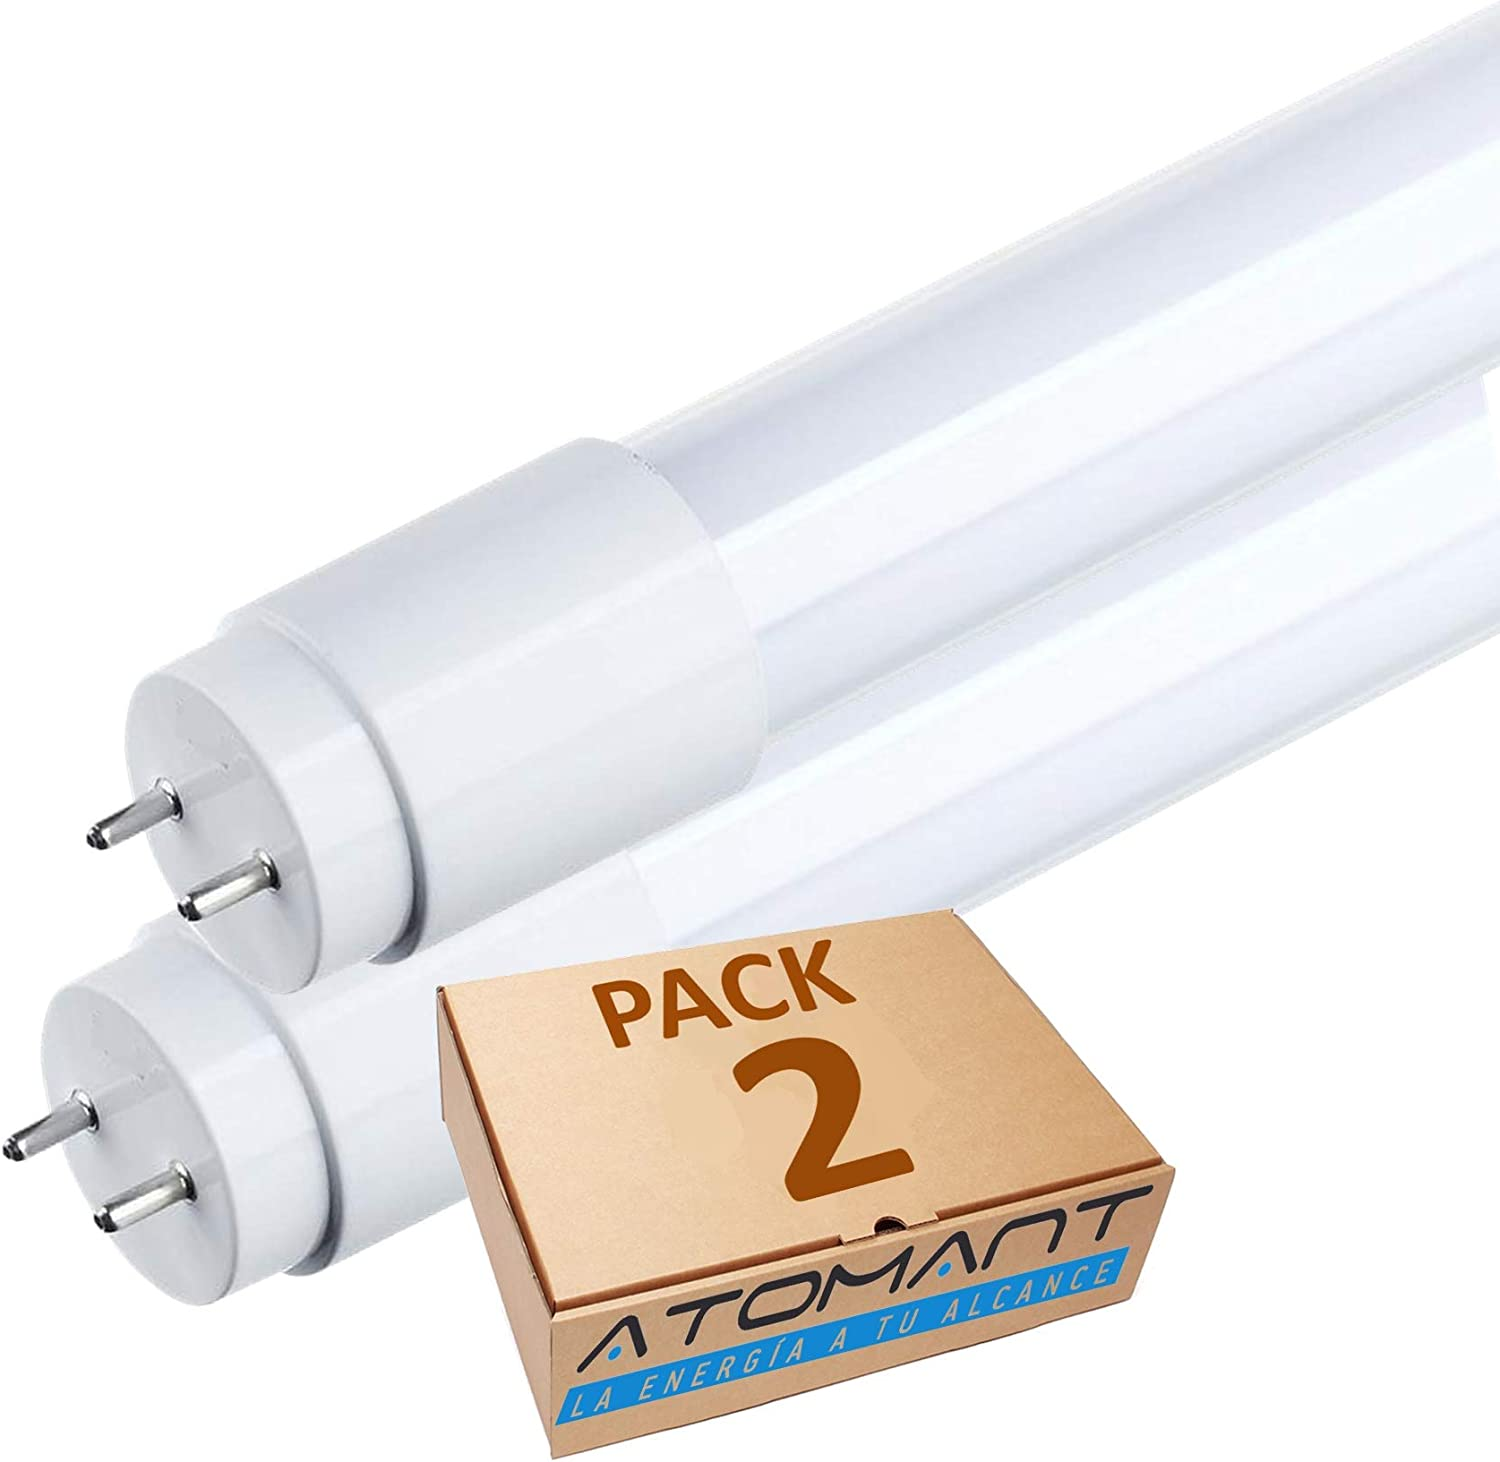 Pack 2x Tubo LED 60 cm, 9w. Color Blanco Frio (6500K), T8 Standard. 870 Lumenes. Cebador LED incluido. A++